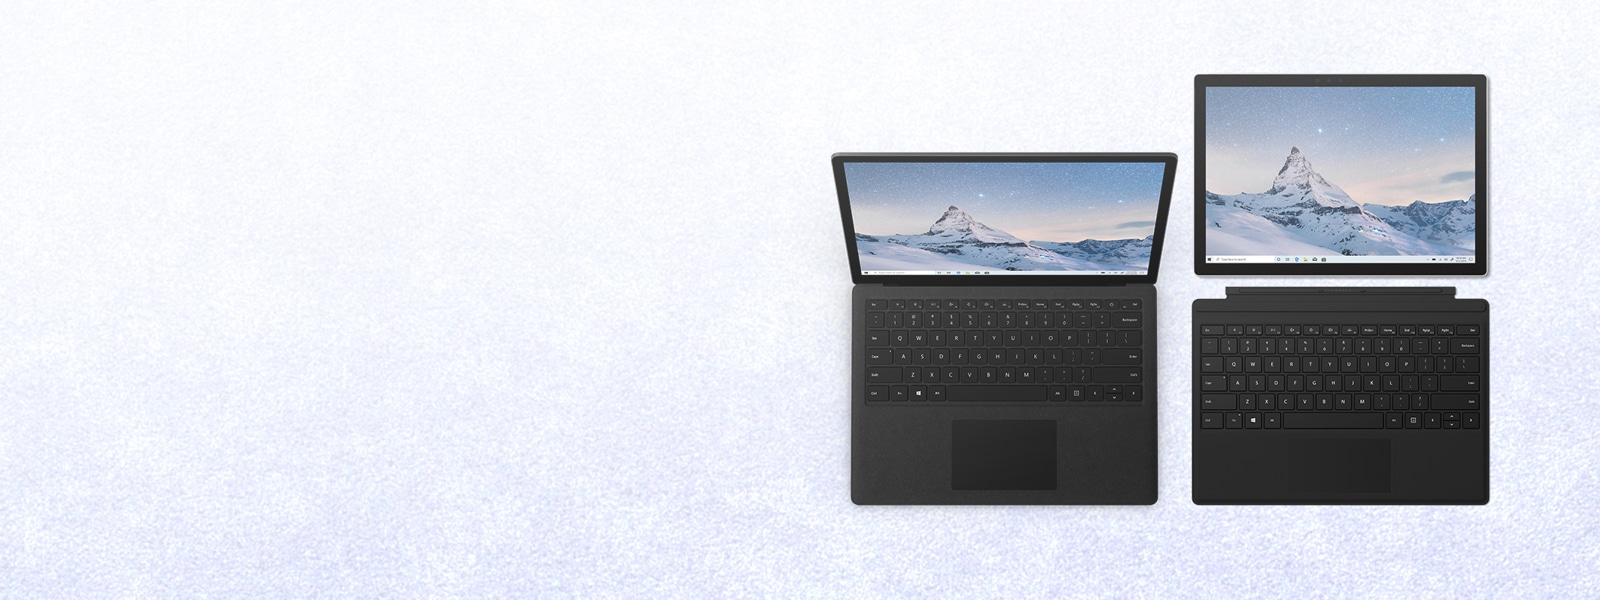 SurfacePro6 and SurfaceLaptop2